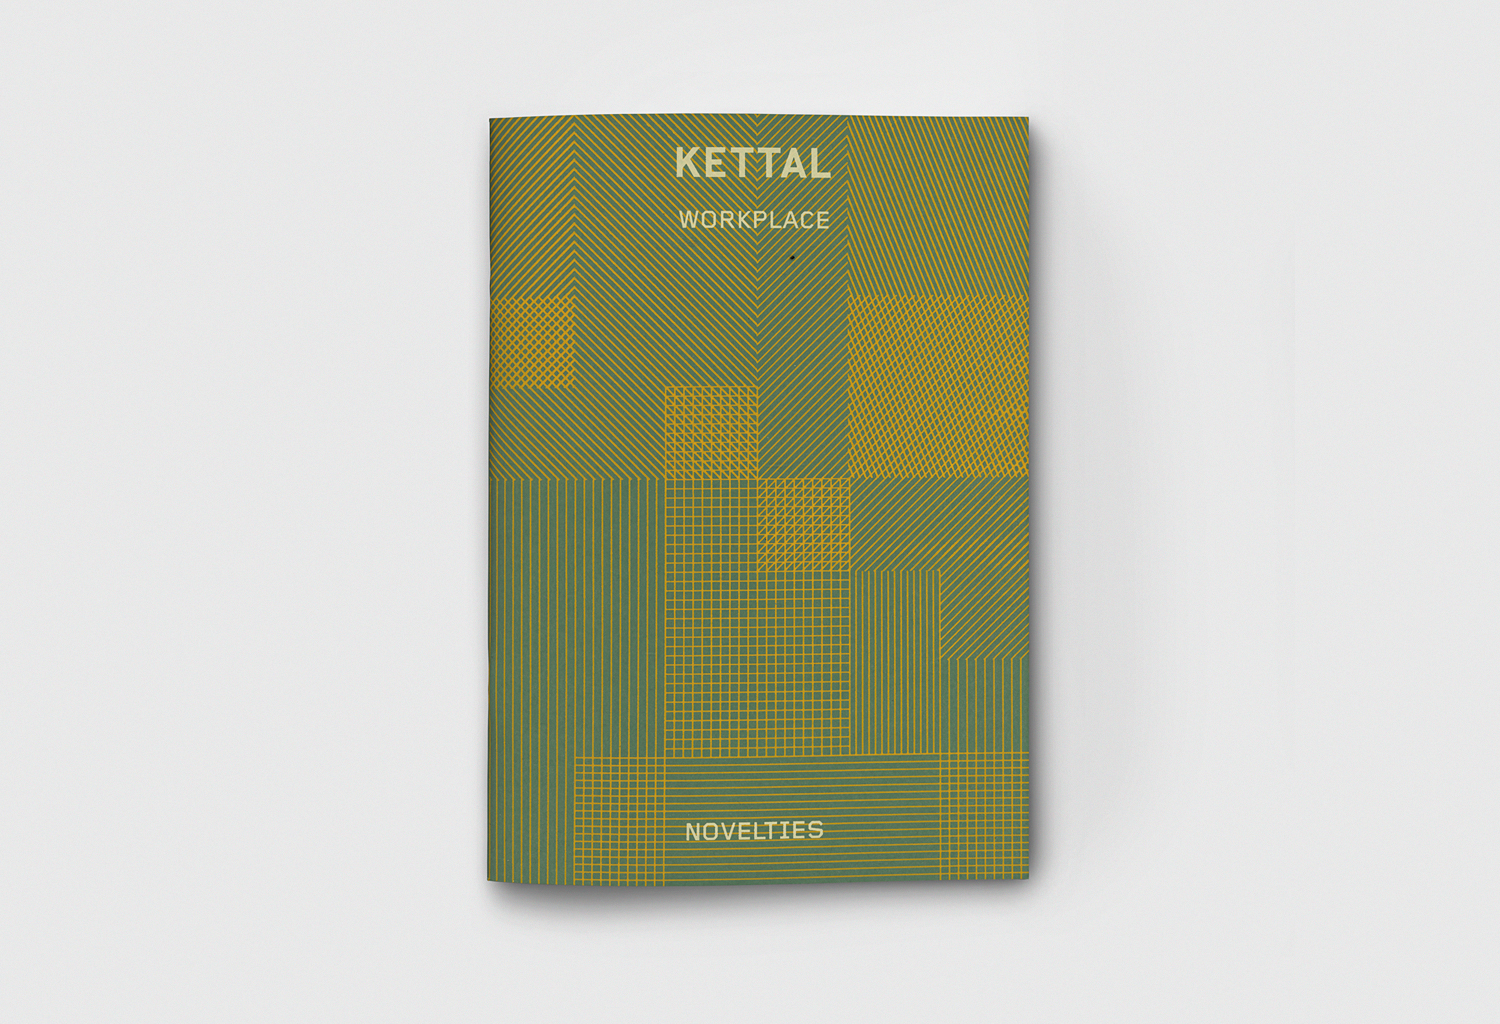 kettal-workplace-1